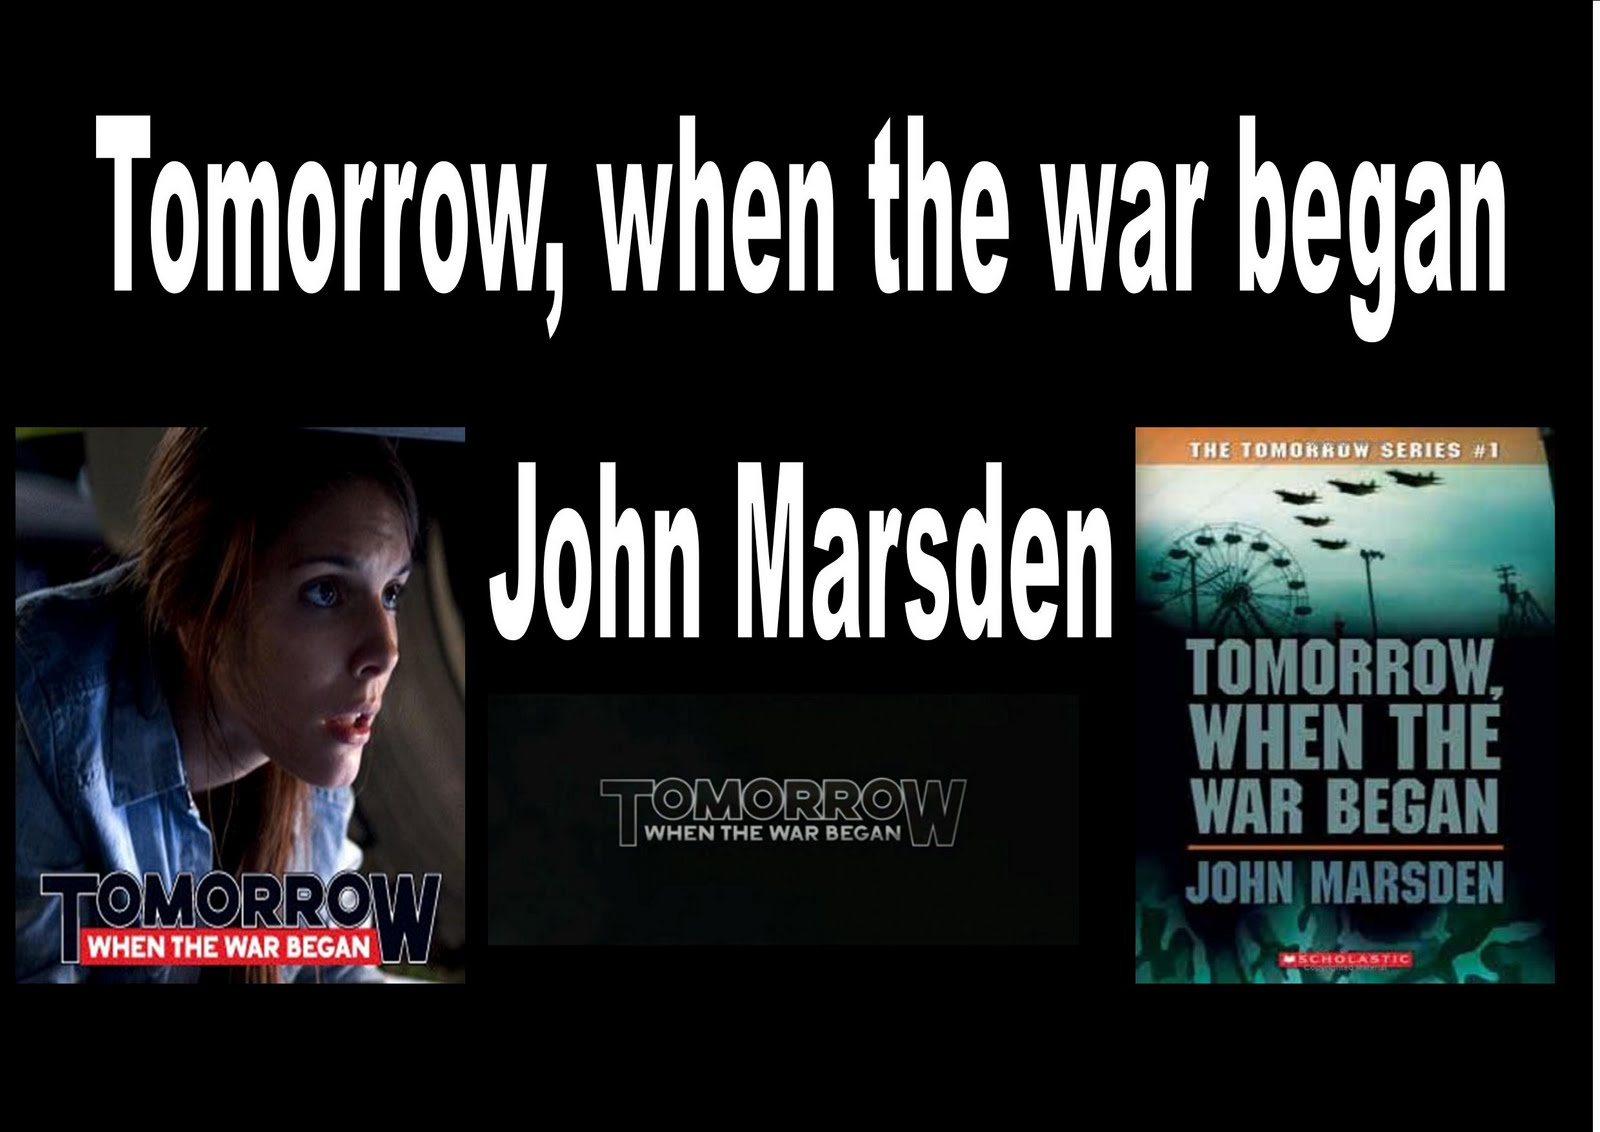 the tomorrow series An overview of john marsden's 'tomorrow' series this website is dedicated to the memory of jessica lincoln smith, a john marsden fan lost tragically at 26, but never to be forgotten.